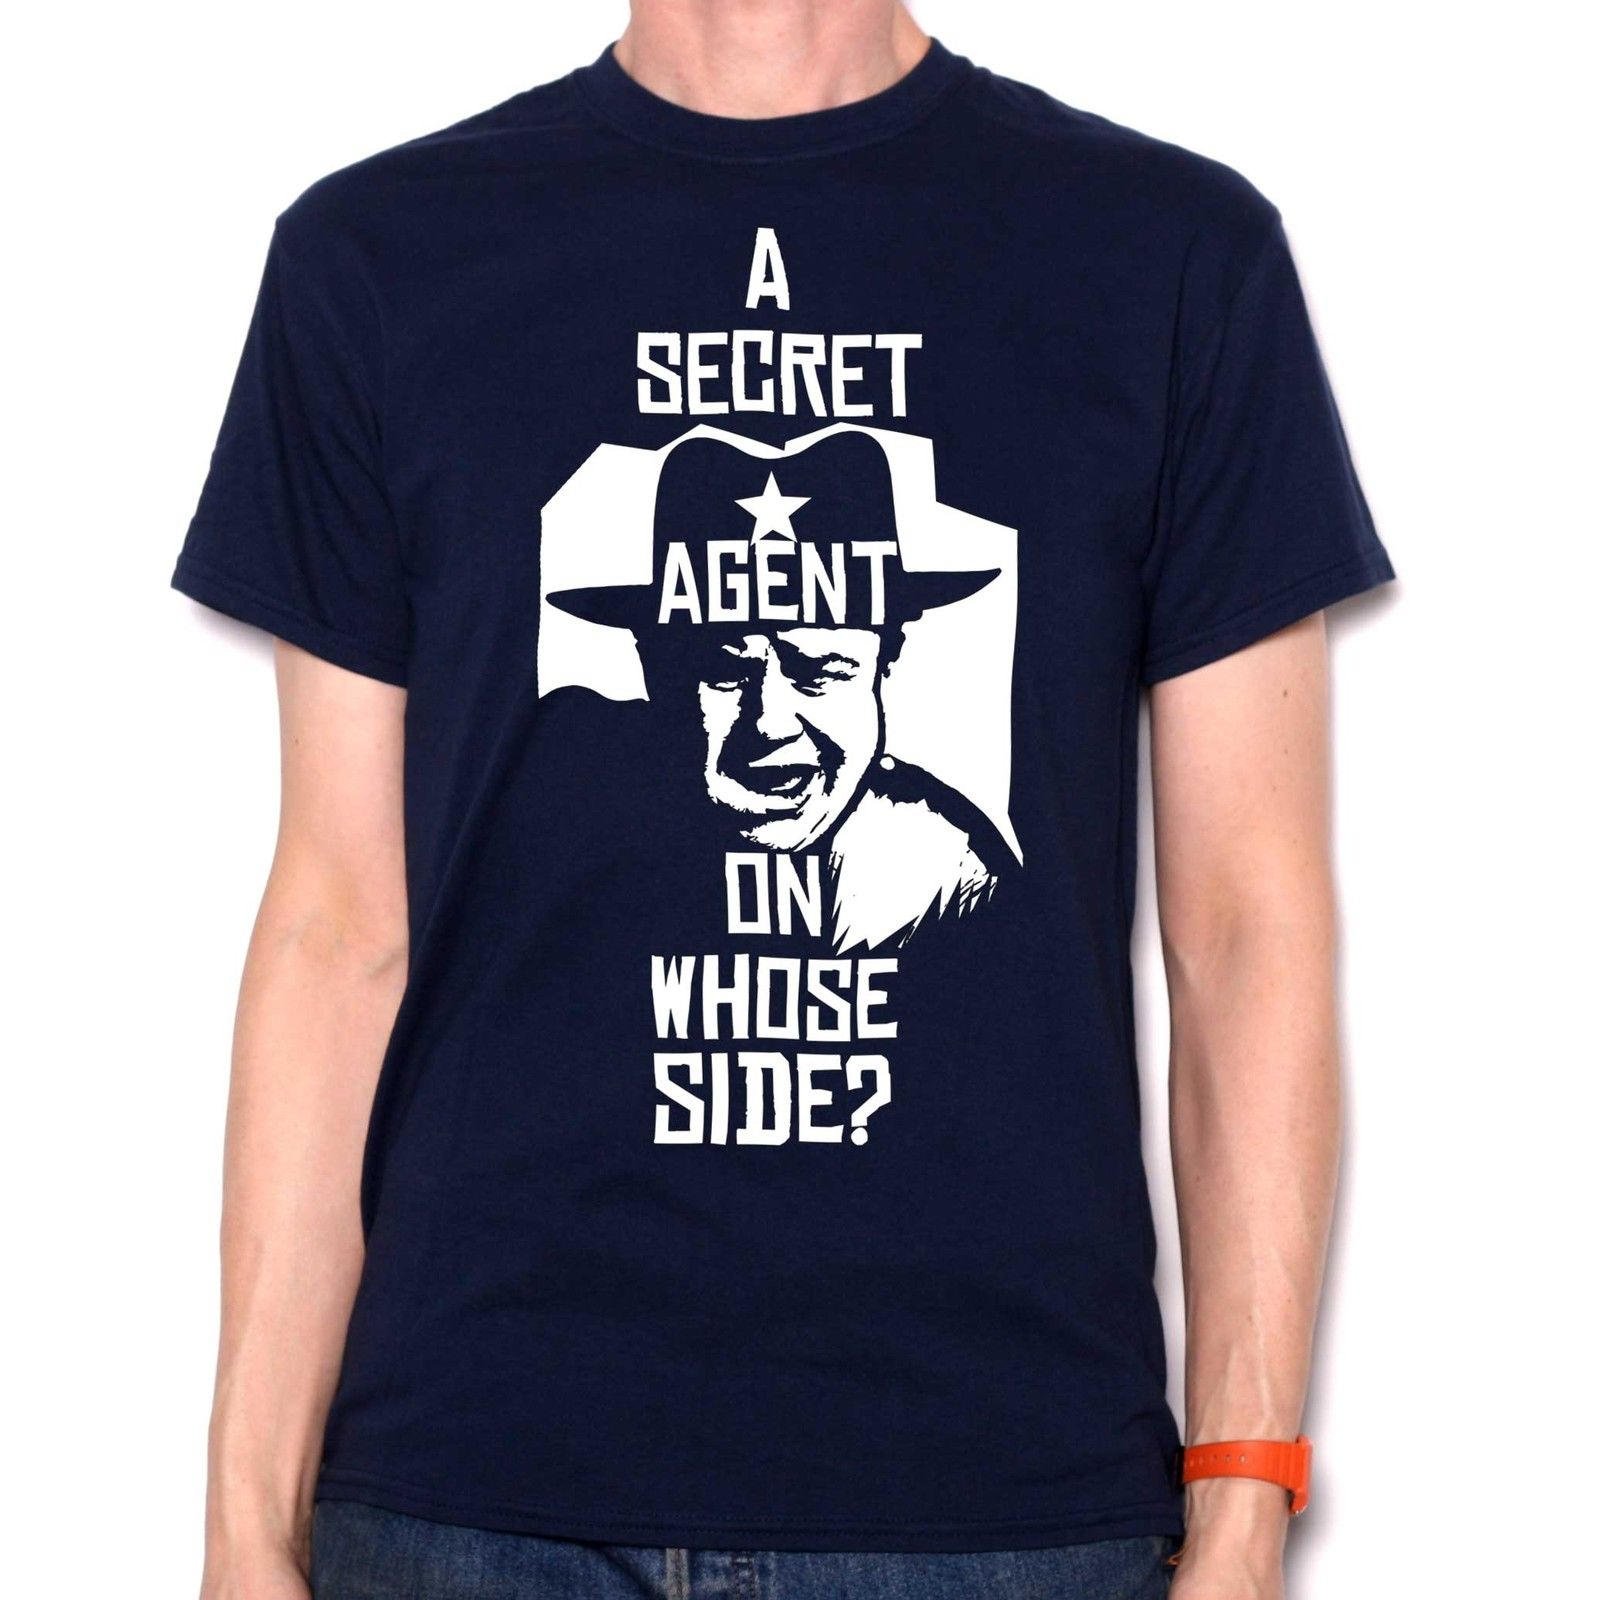 Inspired by JW Pepper T Shirt - A Secret Agent, On Whose Side? Cult Movie Tee